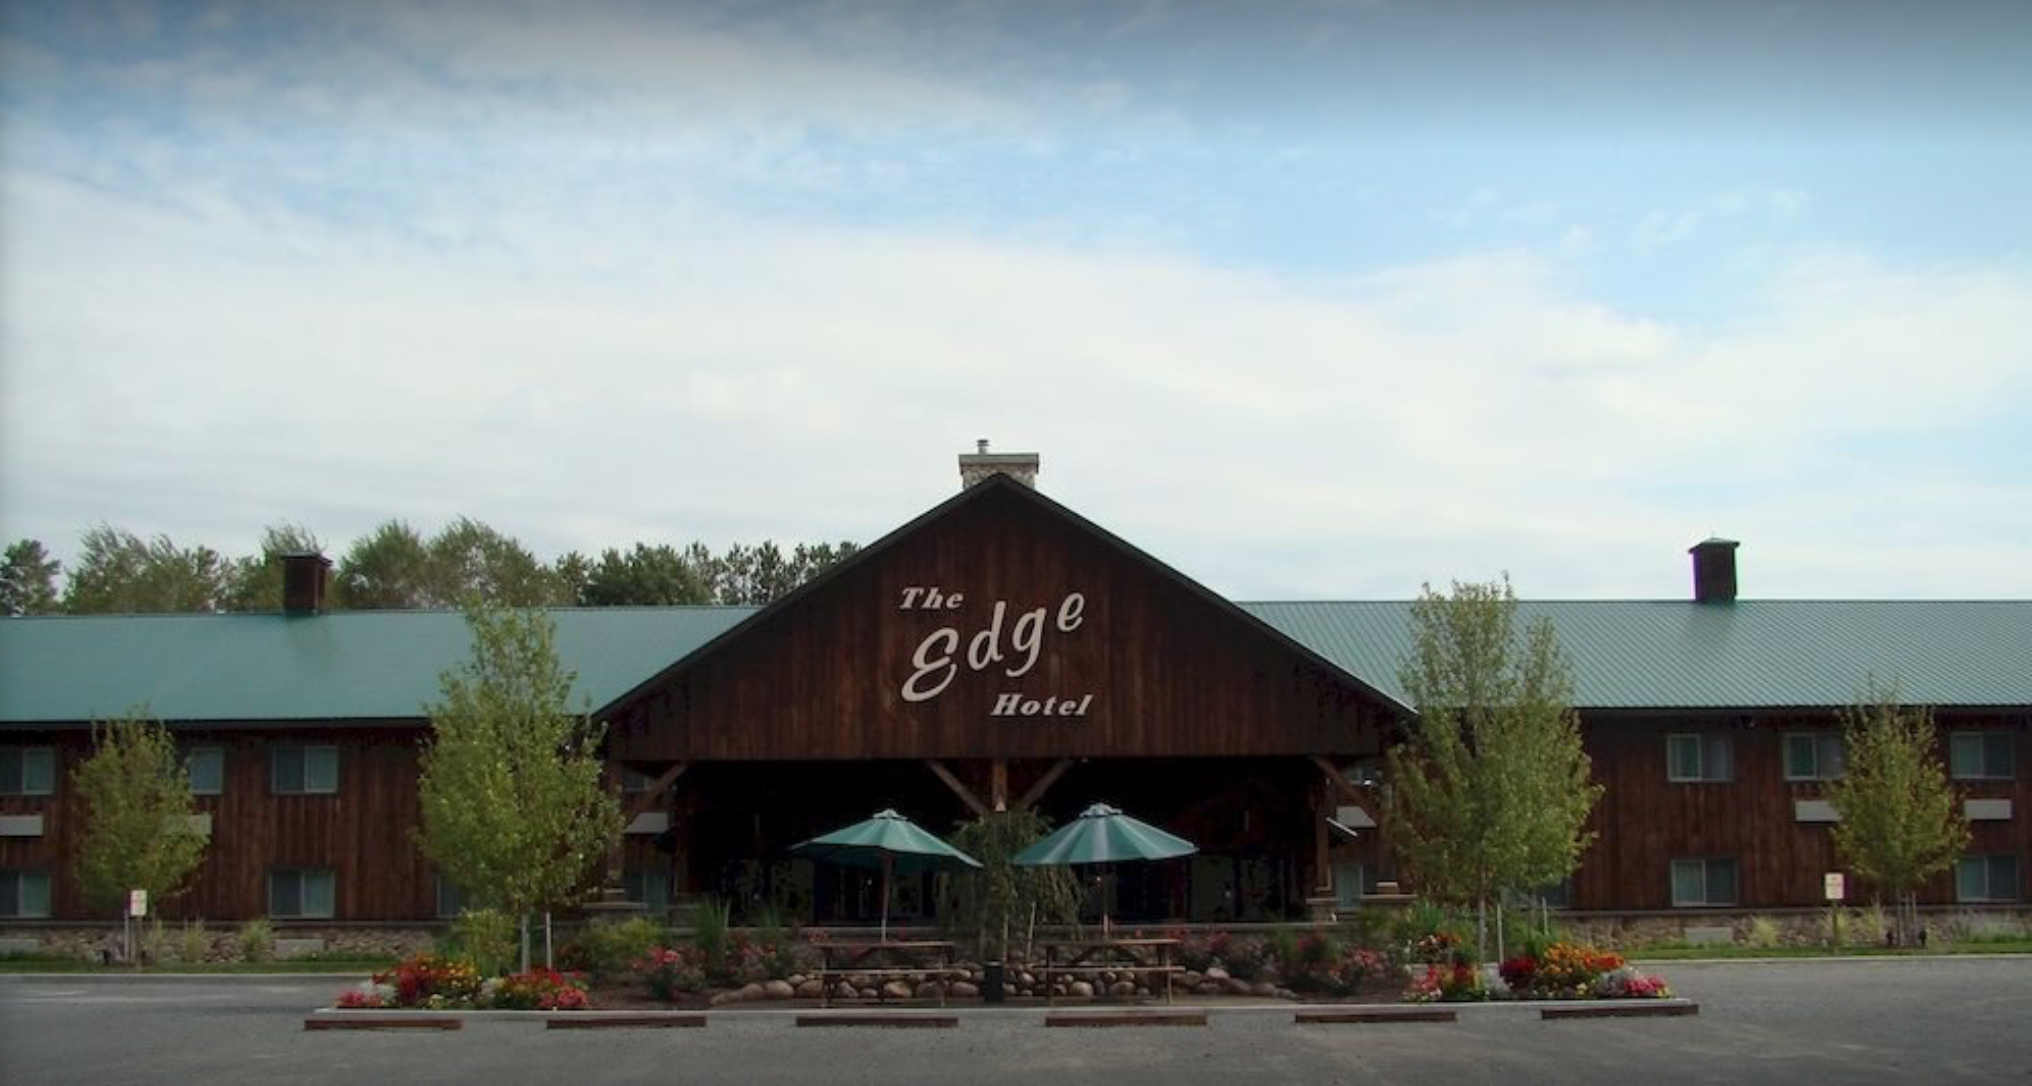 The Edge Hotel - Phone: (866) 348-4211Address: 3952 NY-12, Lyons Falls, NY 13368Distance From Track: 6.3 Miles